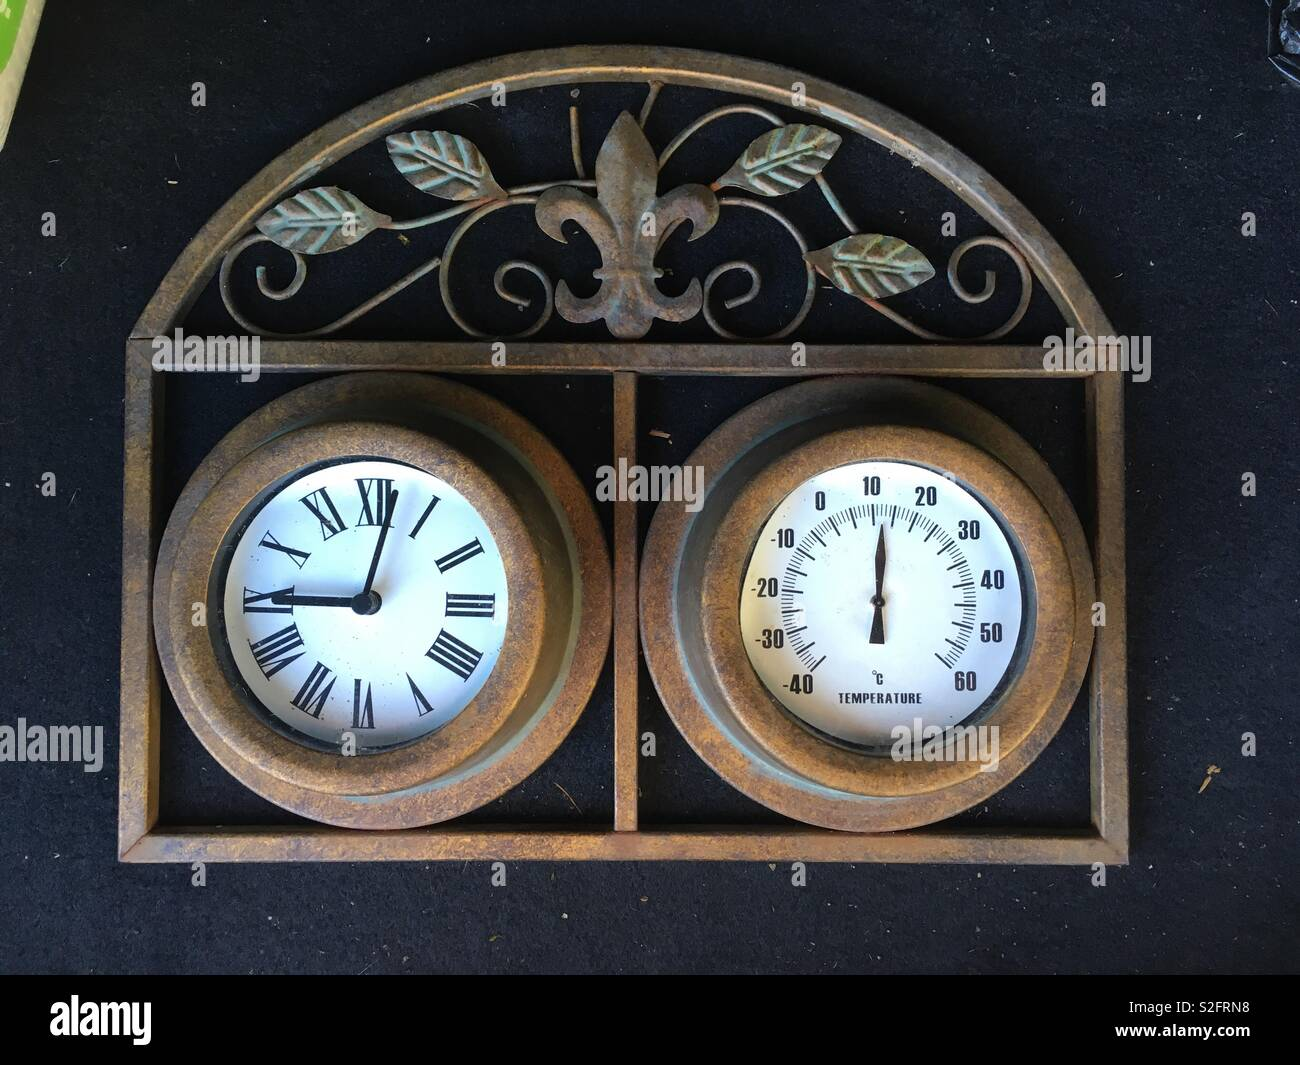 Time and humidity - Stock Image